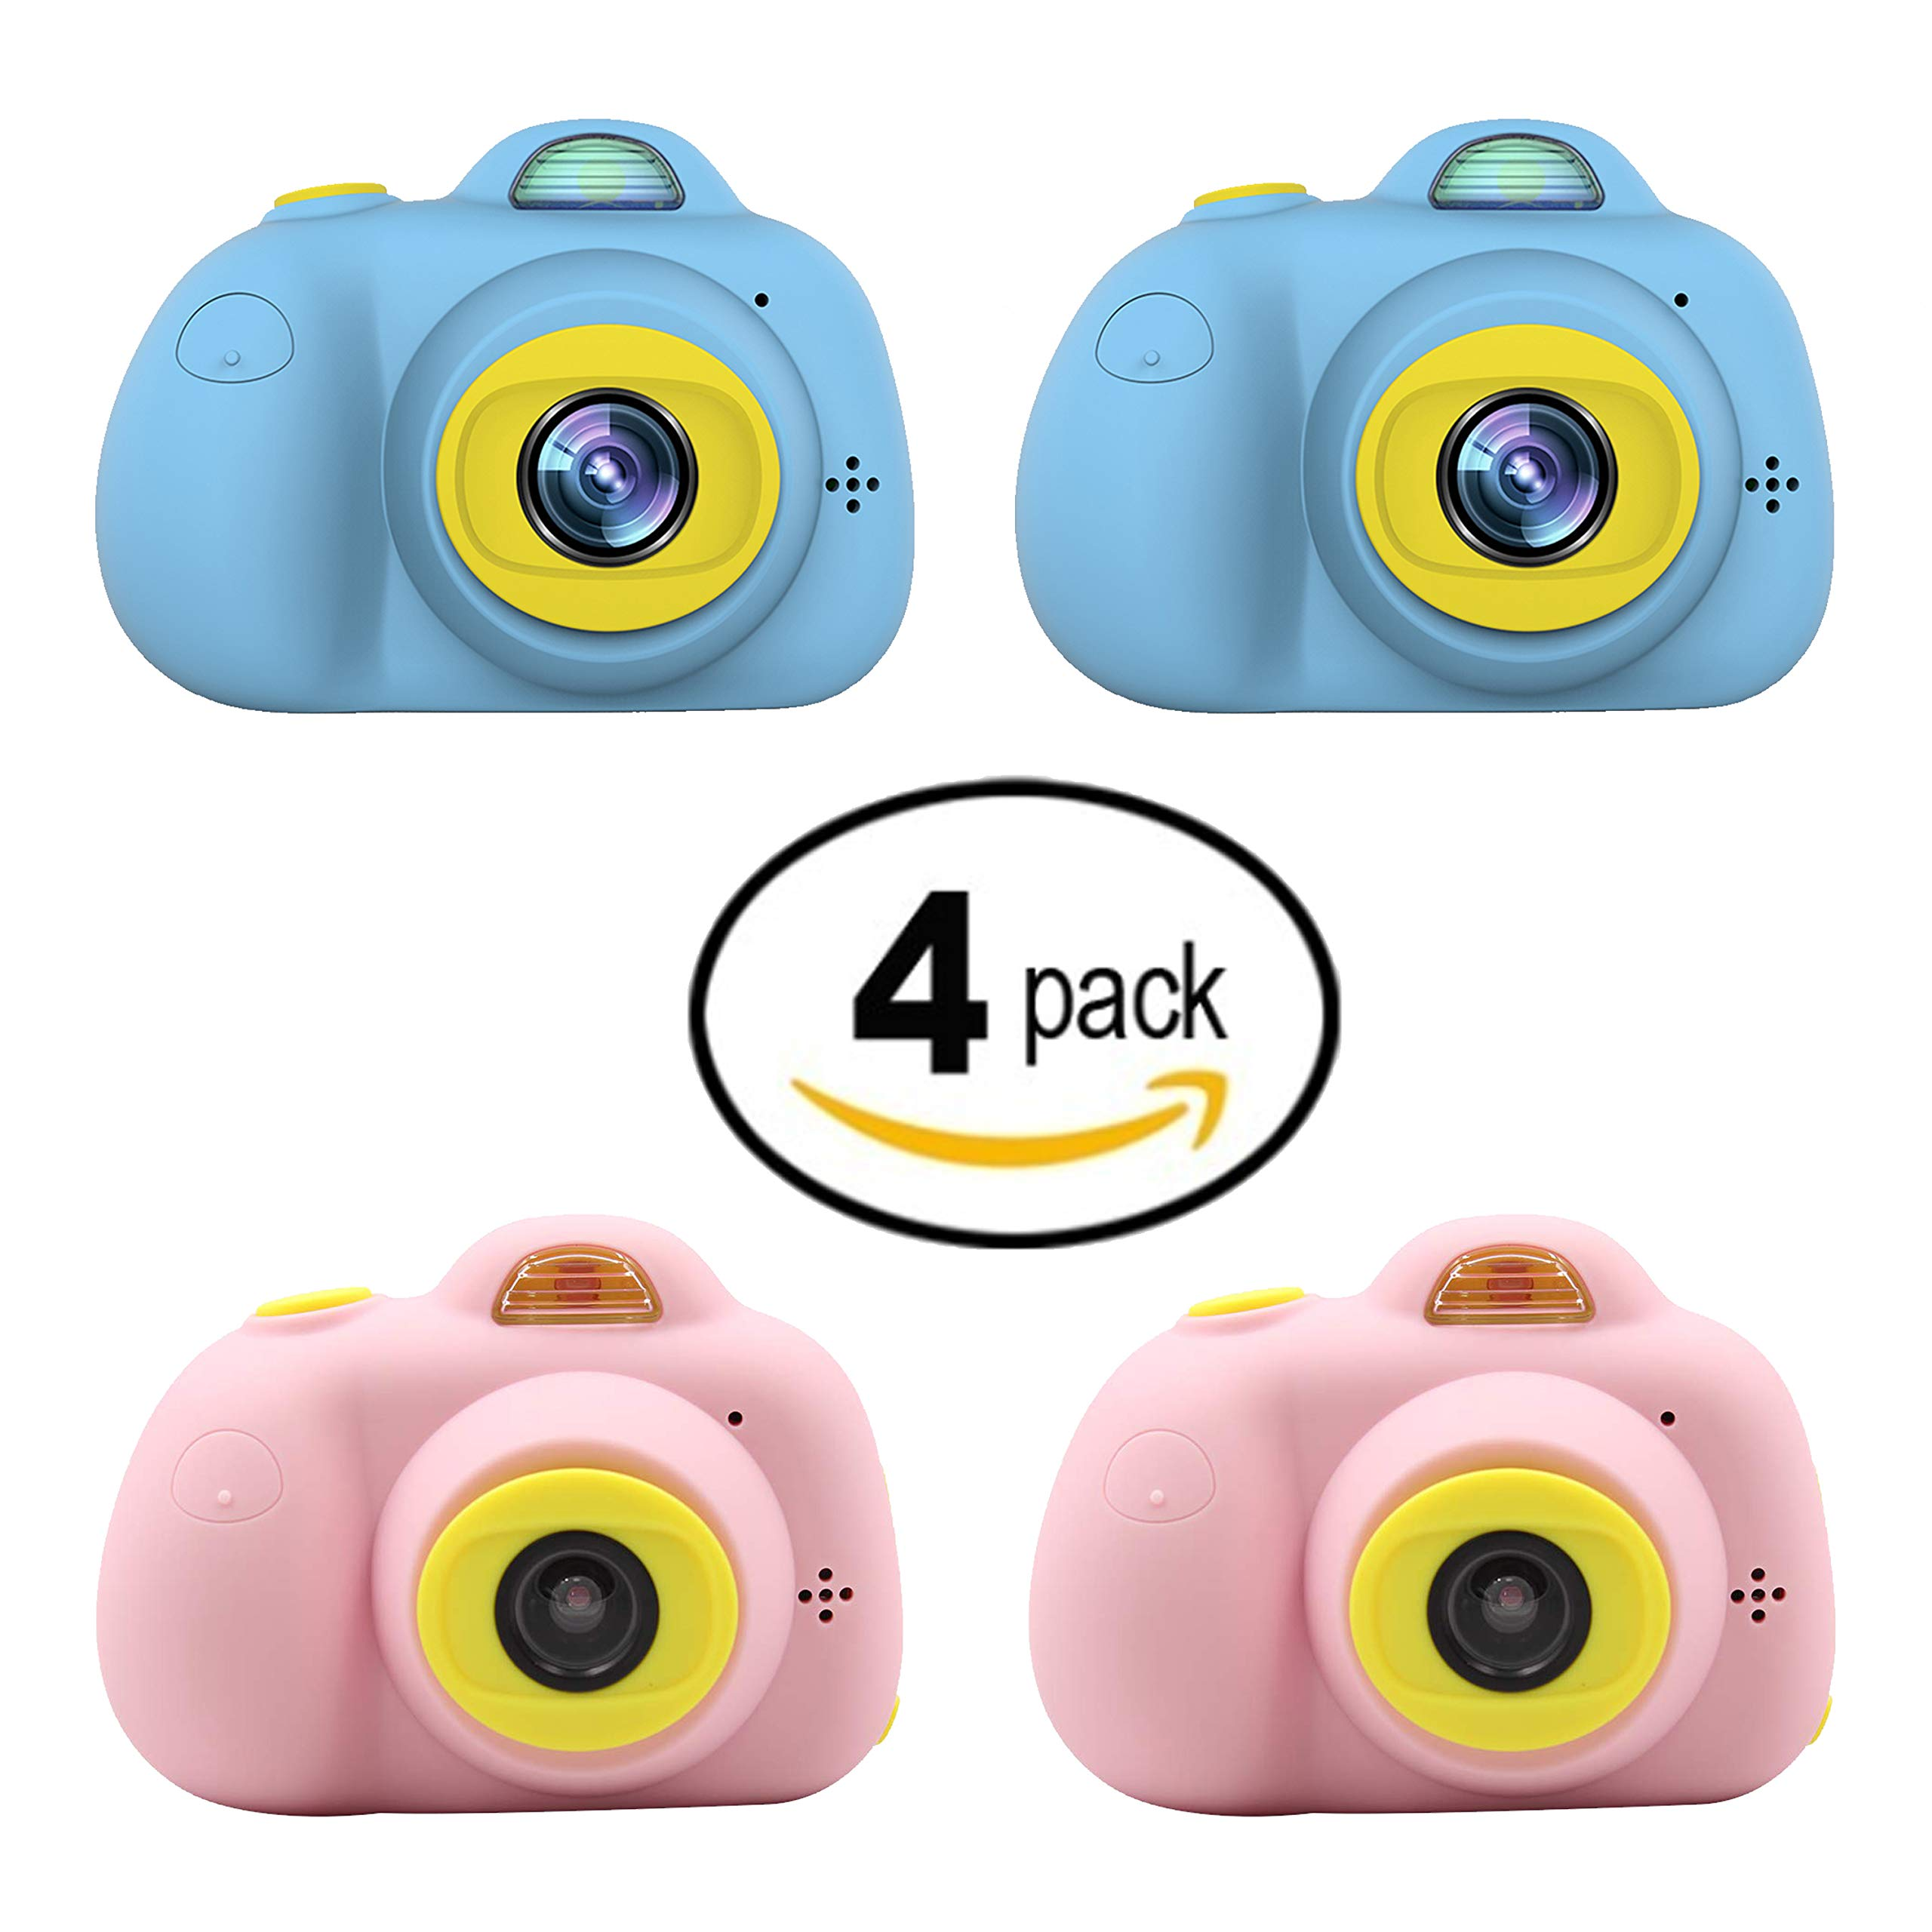 Kids Mini Camera Gifts for Girls and Boys, Rechargeable Shockproof Digital Camcorder Toy for Kids with Soft Silicone Shell - HD Screen Video Lens for Outdoor Play for 3-8 Years Old - 2PINK+2BLUE by Duddy-cam (Image #1)